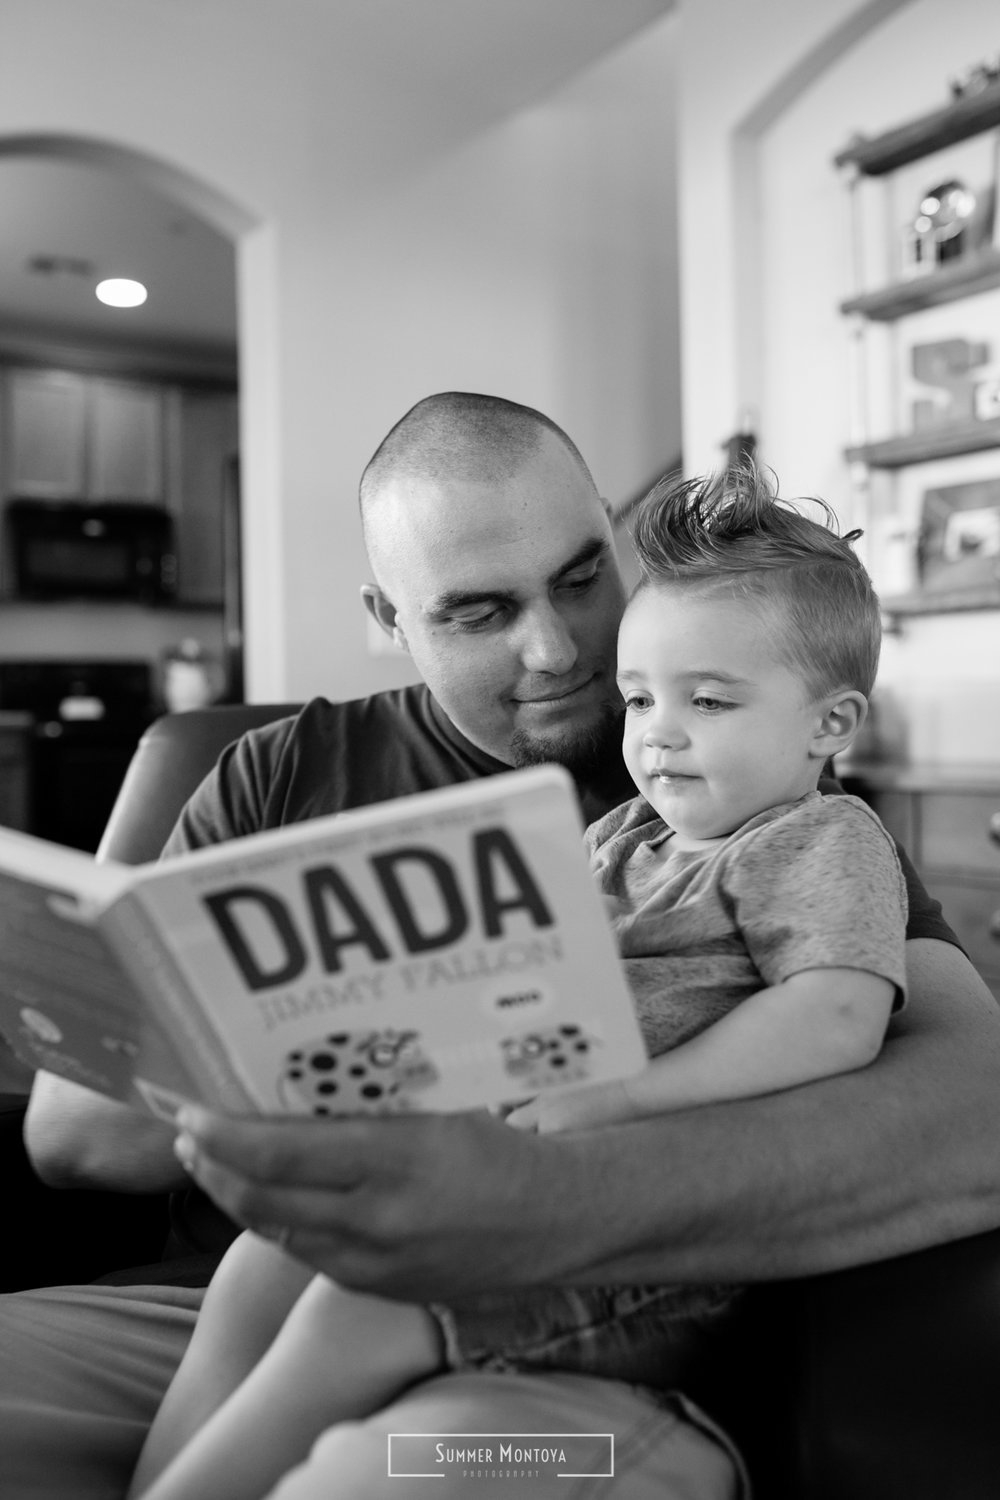 father-son-reading-dada